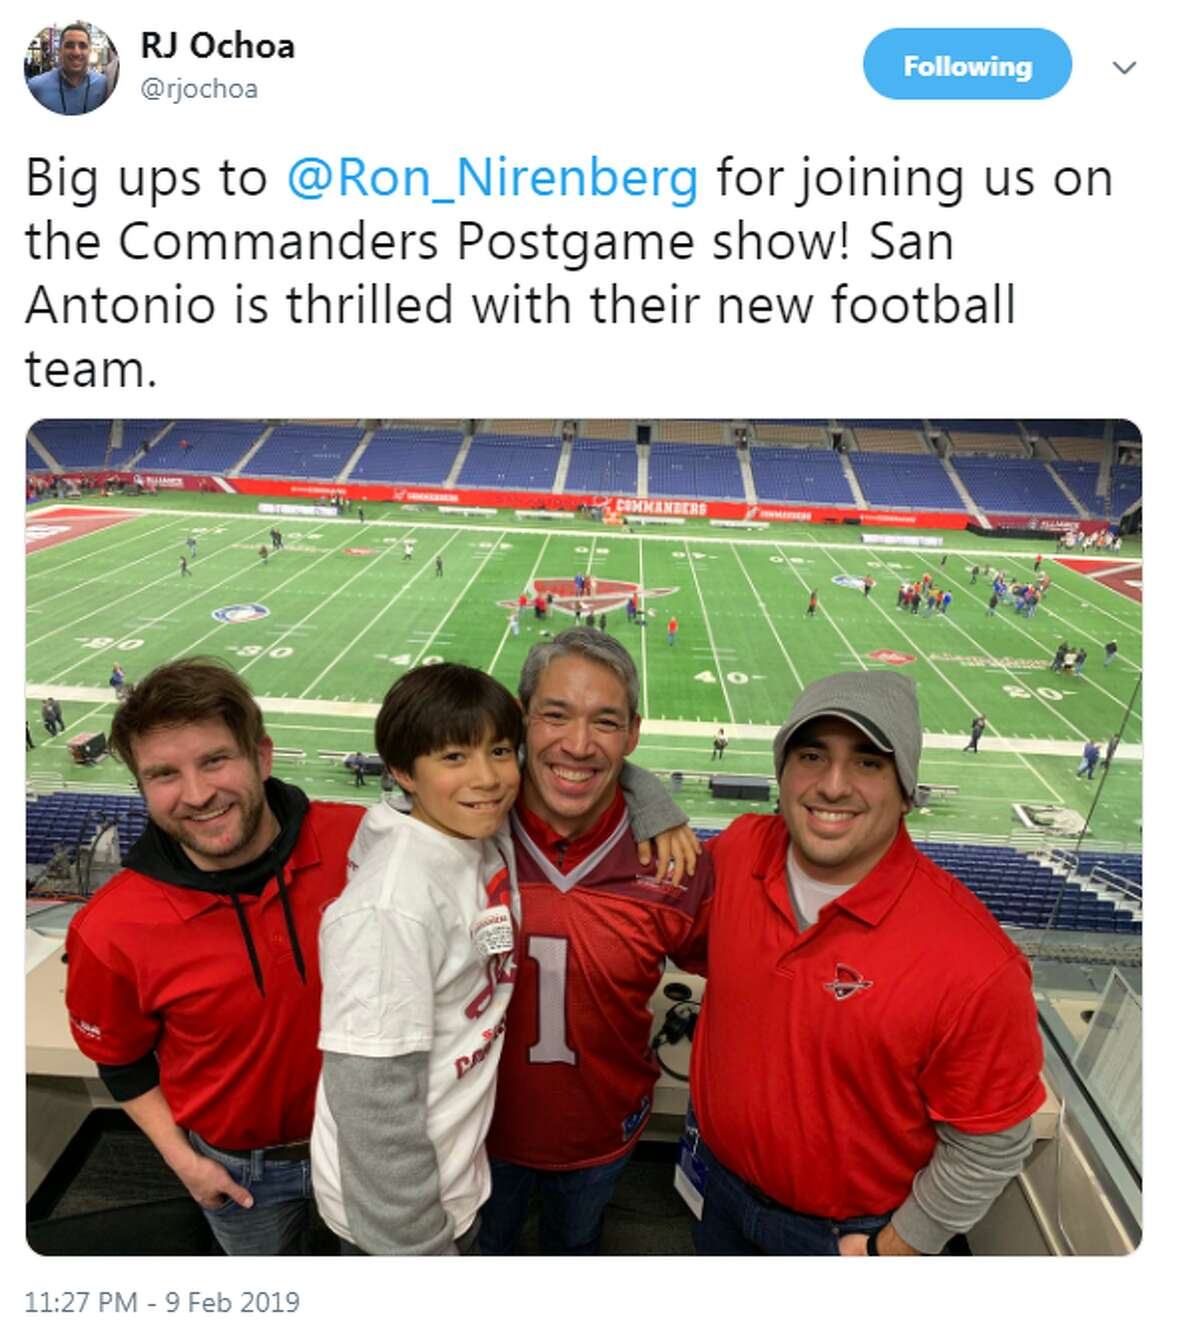 @rjochoa: Big ups to @Ron_Nirenberg for joining us on the Commanders Postgame show! San Antonio is thrilled with their new football team.